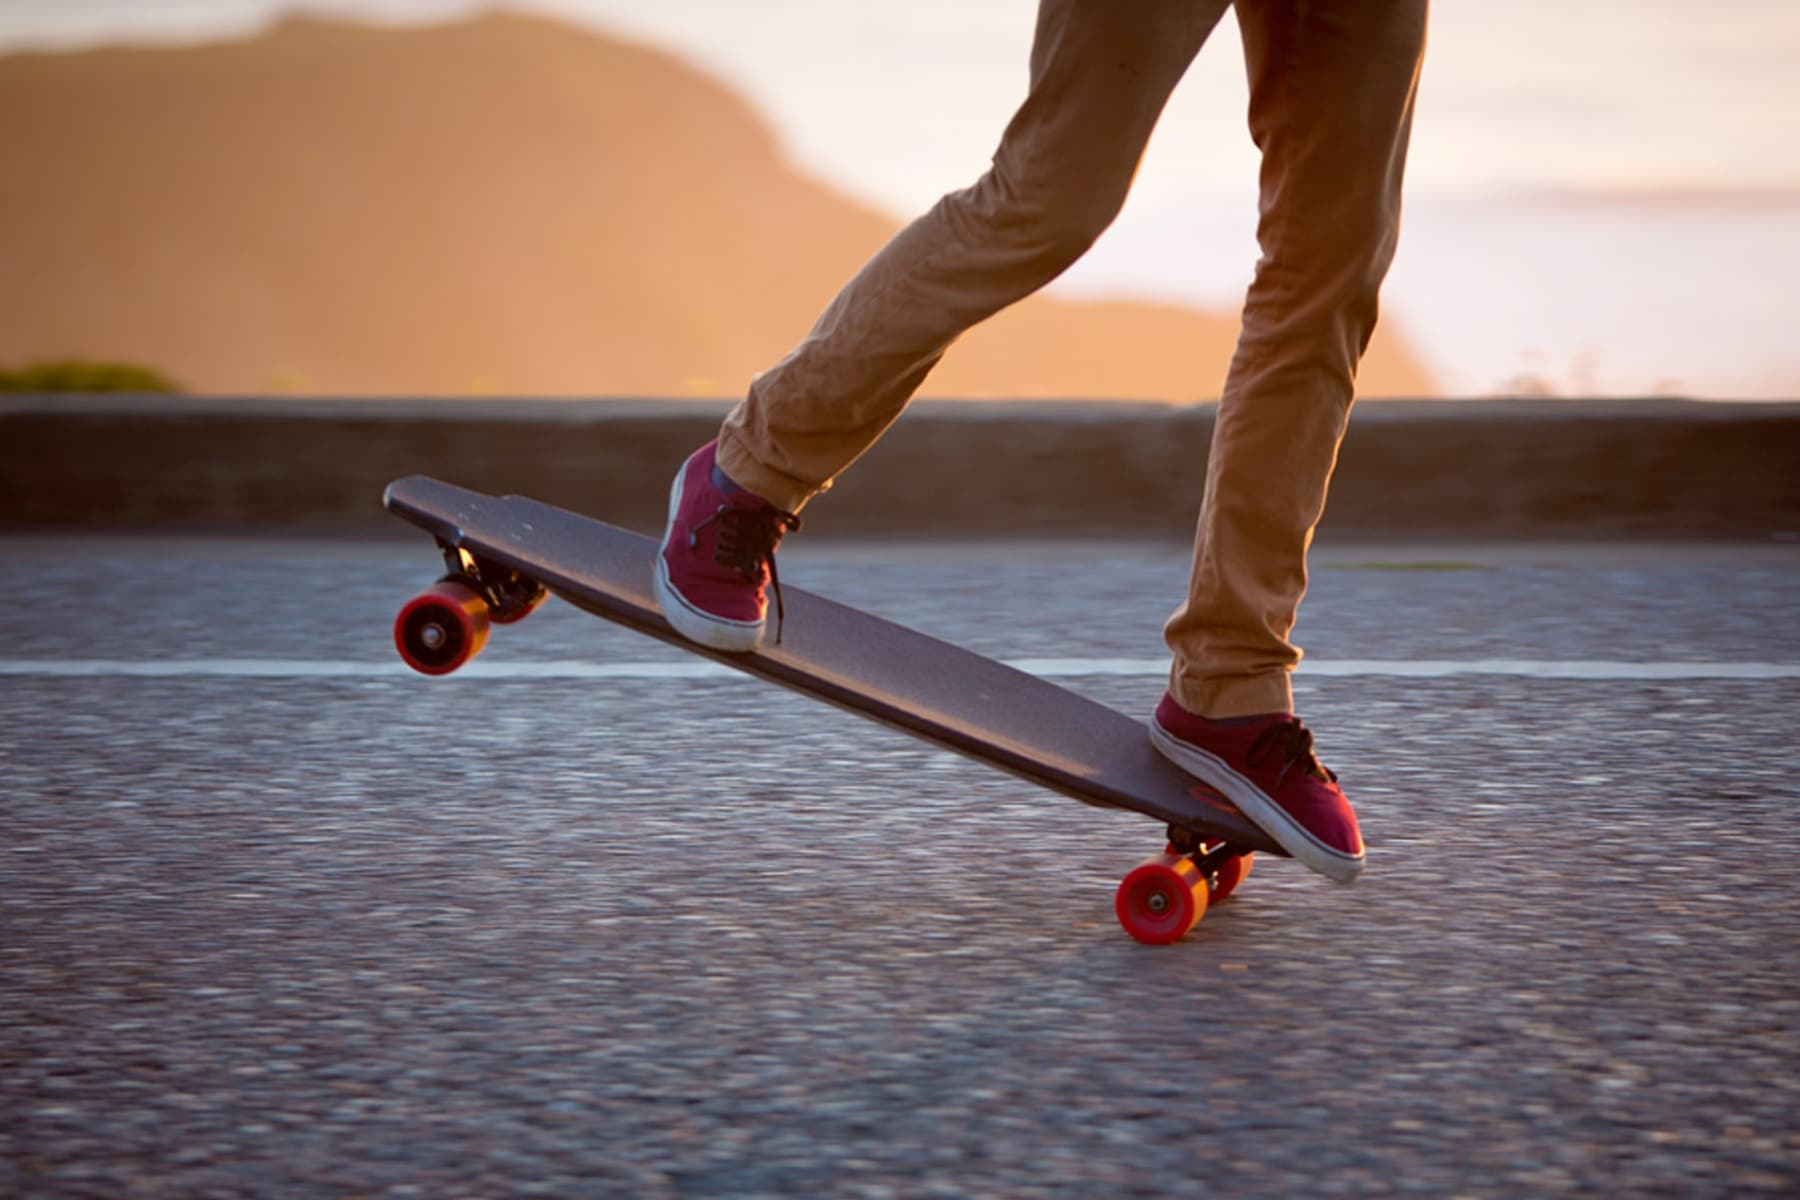 The 10 Best Electric Skateboards to Keep You Coasting